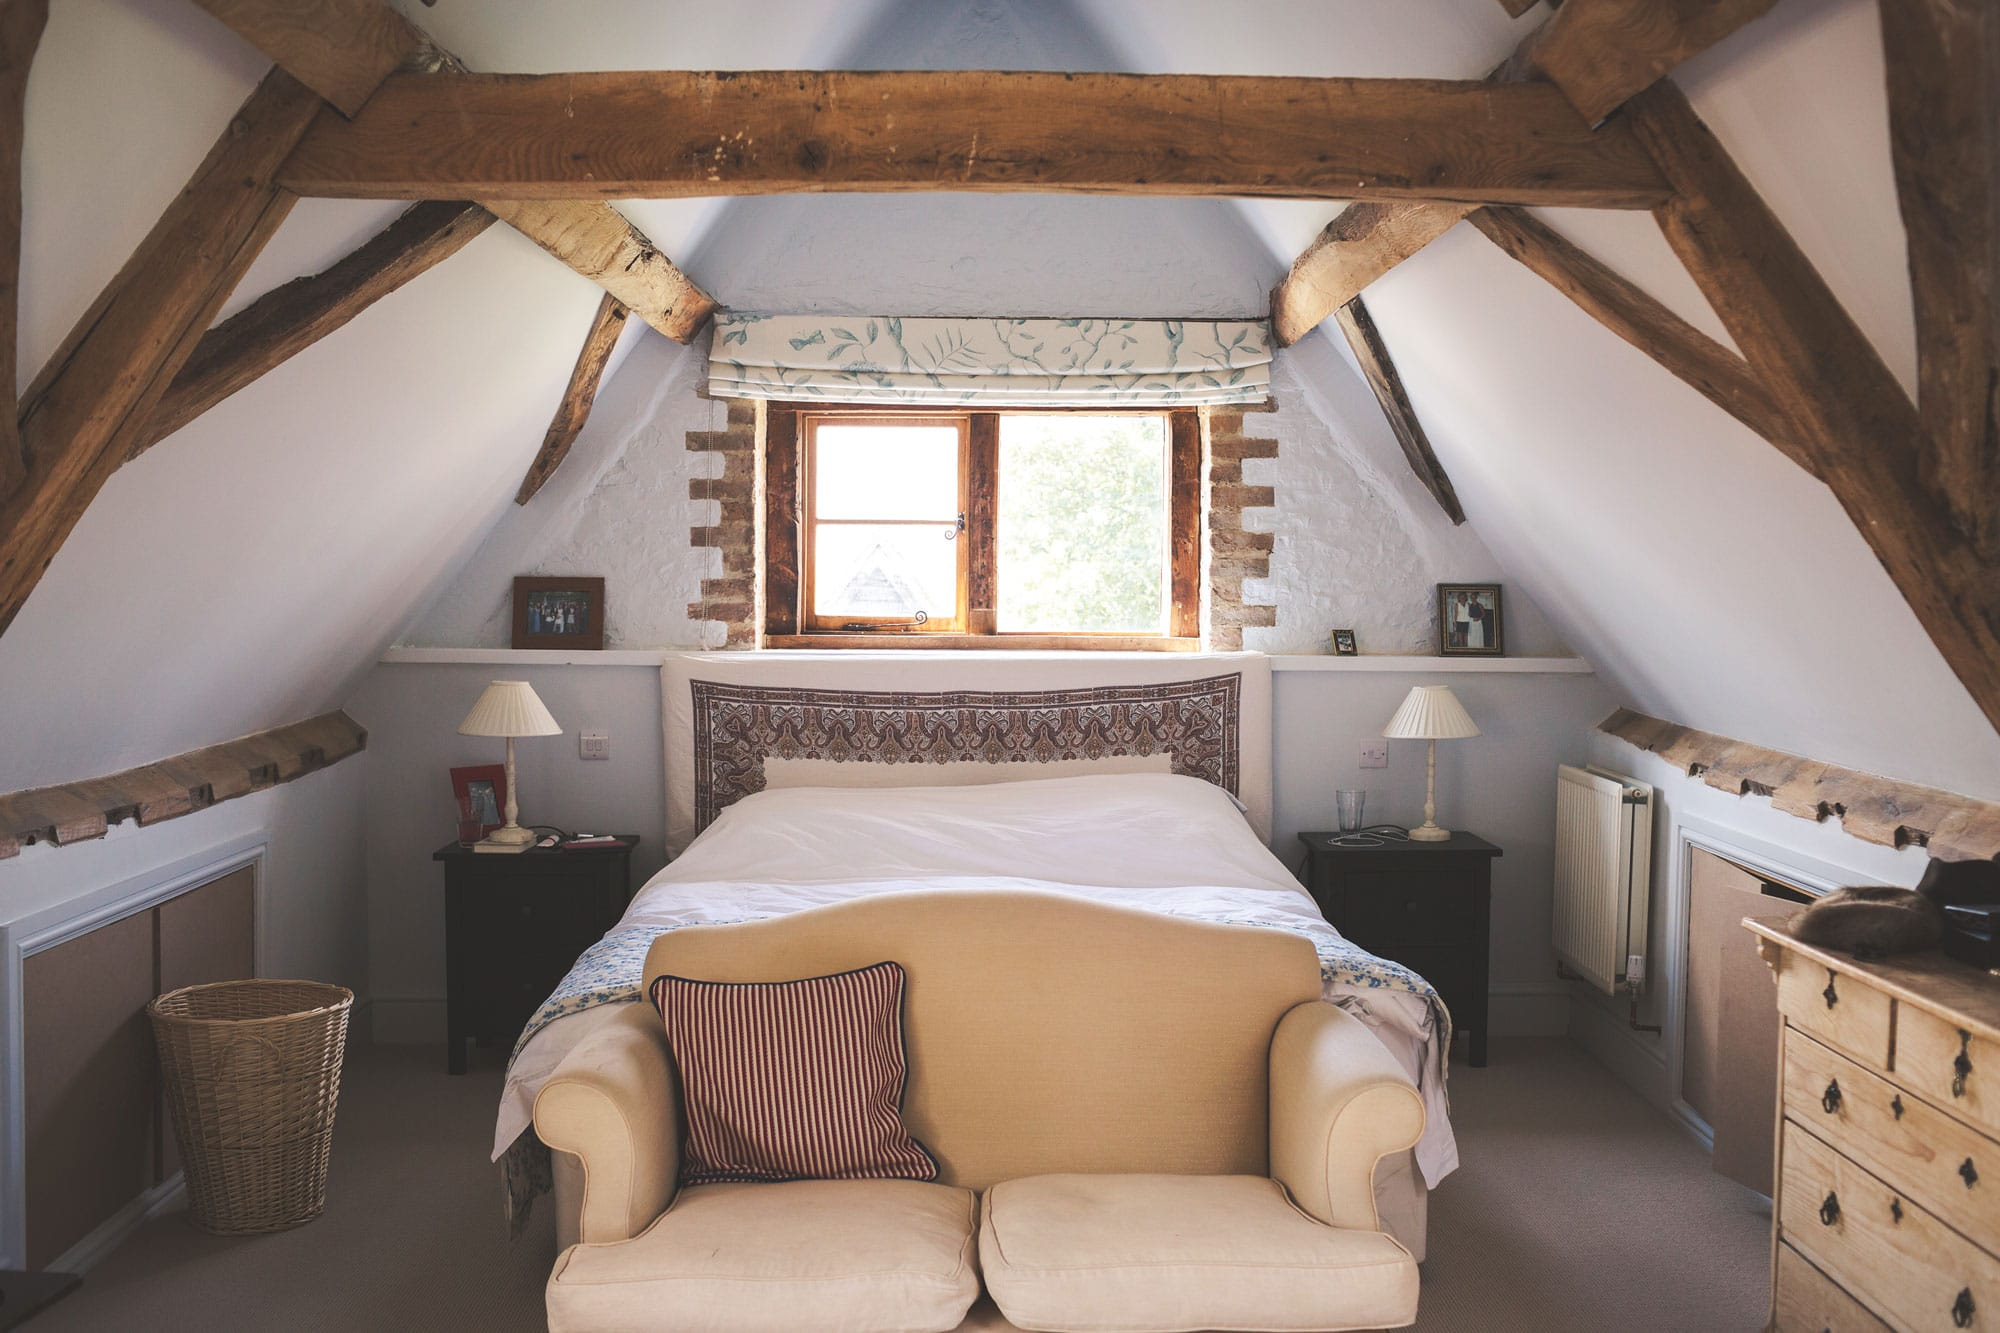 Bedroom in barn conversion with beams